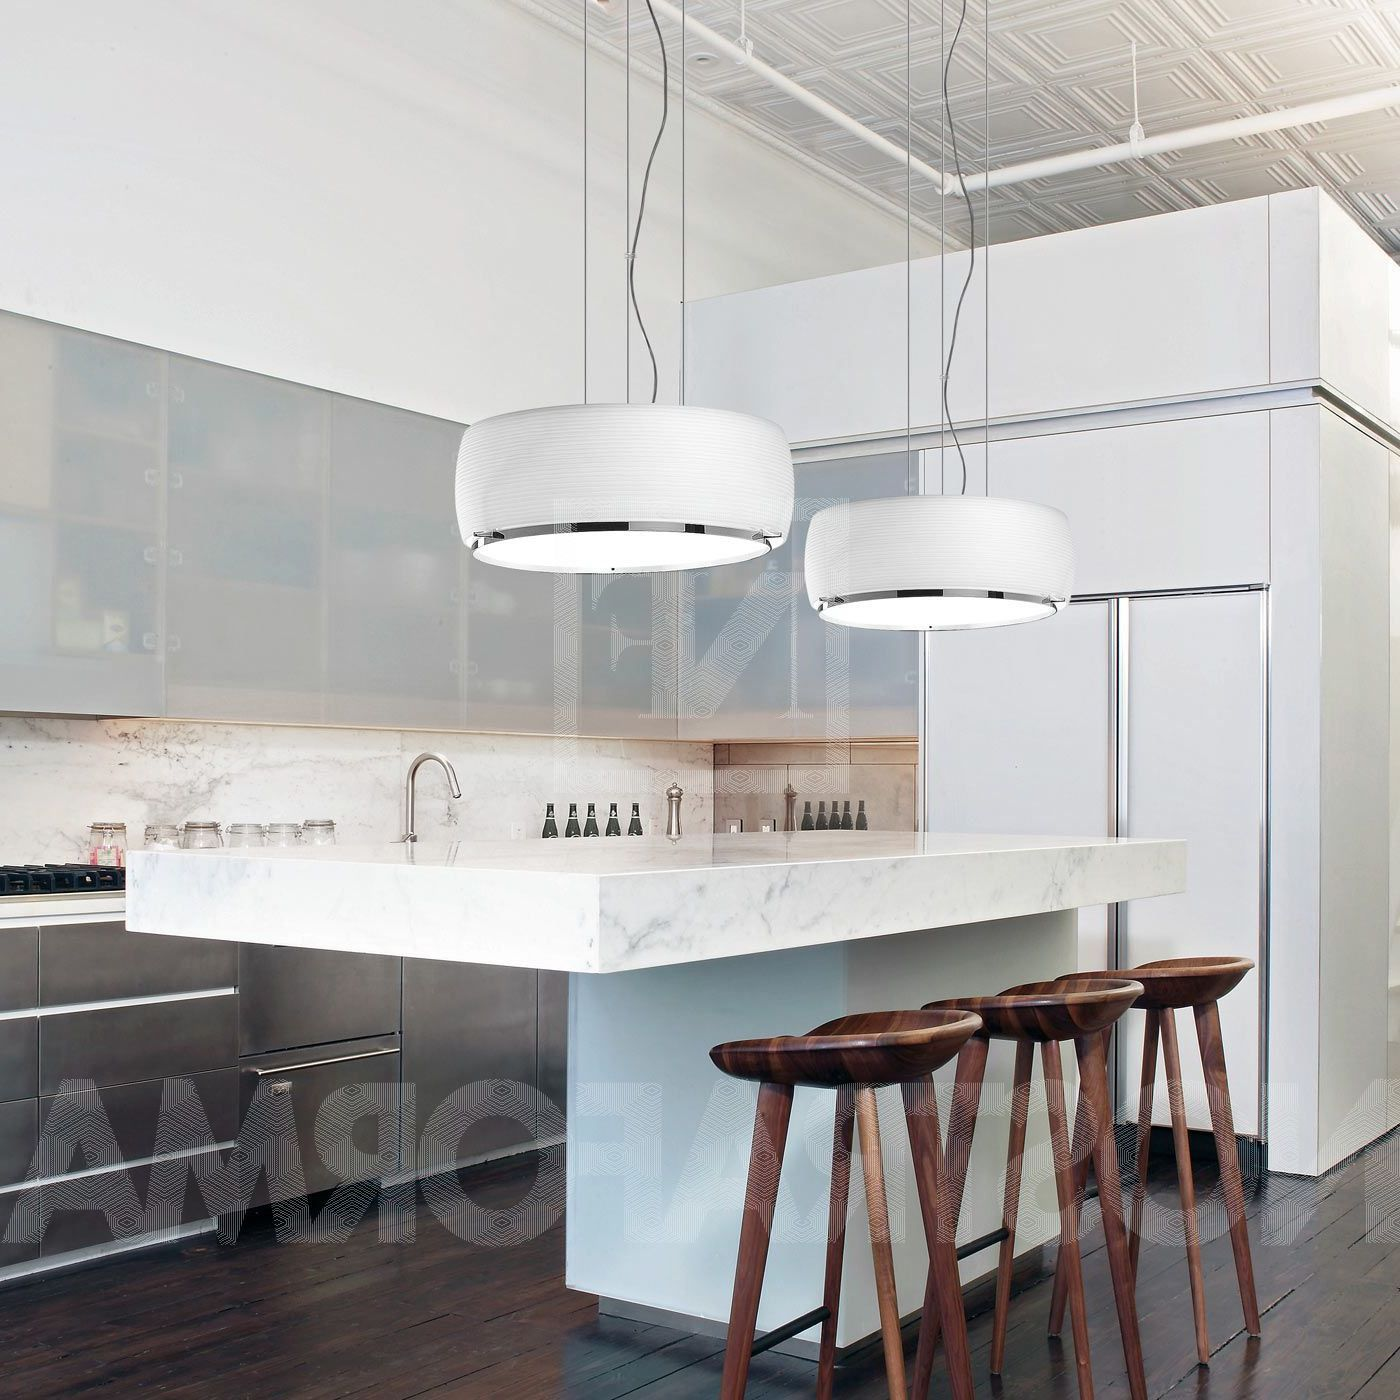 Kitchen Lighting Fixtures Ceiling: Modern Kitchen Kitchen Ceiling Lighting Fixtures Ceiling